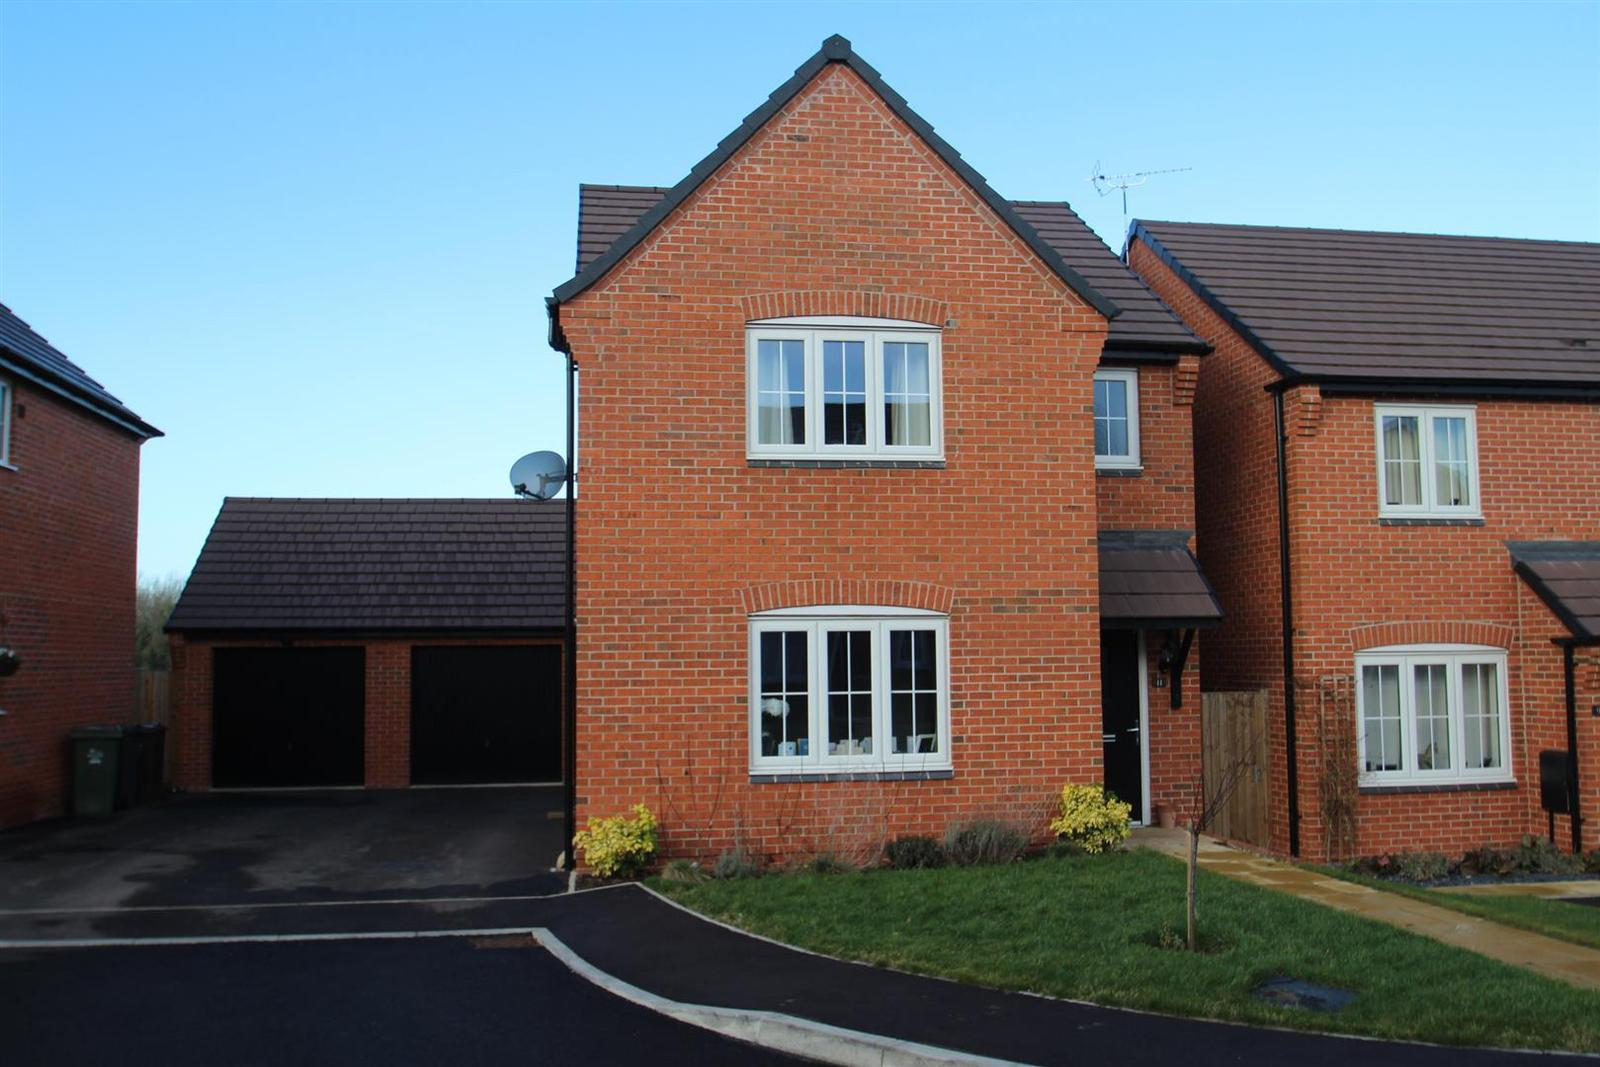 3 Bedrooms Property for sale in Yeoman Way, Rothley, Leicester